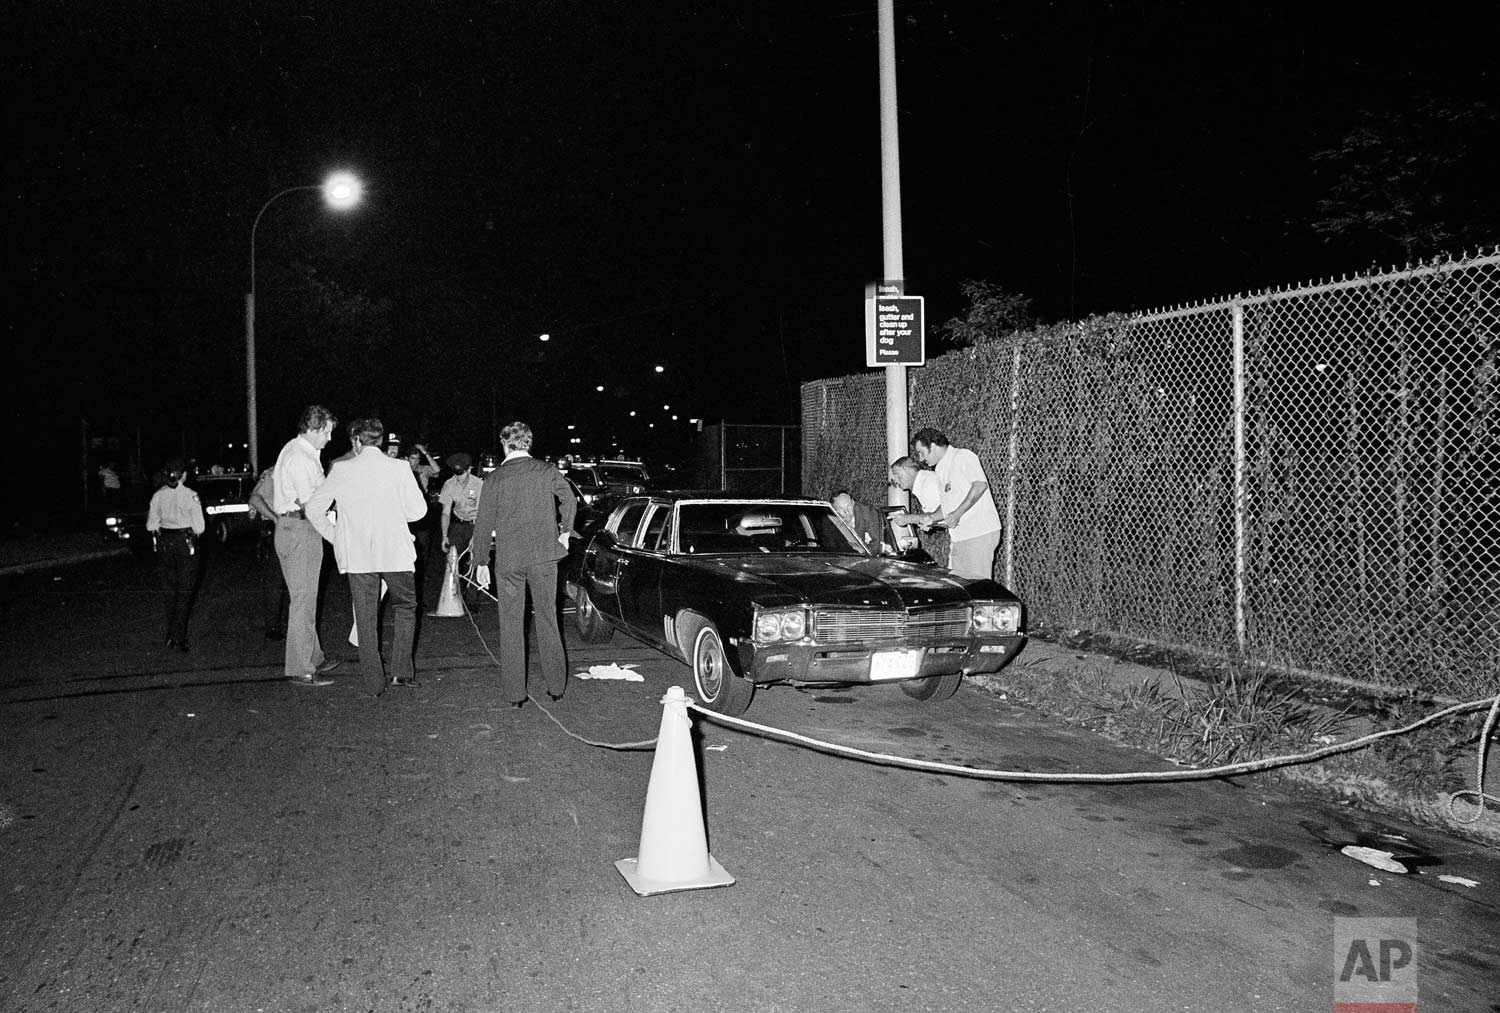 "Police rope off the area around a car as they search for evidence in the early morning hours of July 31, 1977, after a gunman shot a young couple parked in a secluded lovers' lane in the Gravesend section of the Brooklyn borough of New York. Police believe it was another ""Son of Sam"" shooting. (AP Photo)"